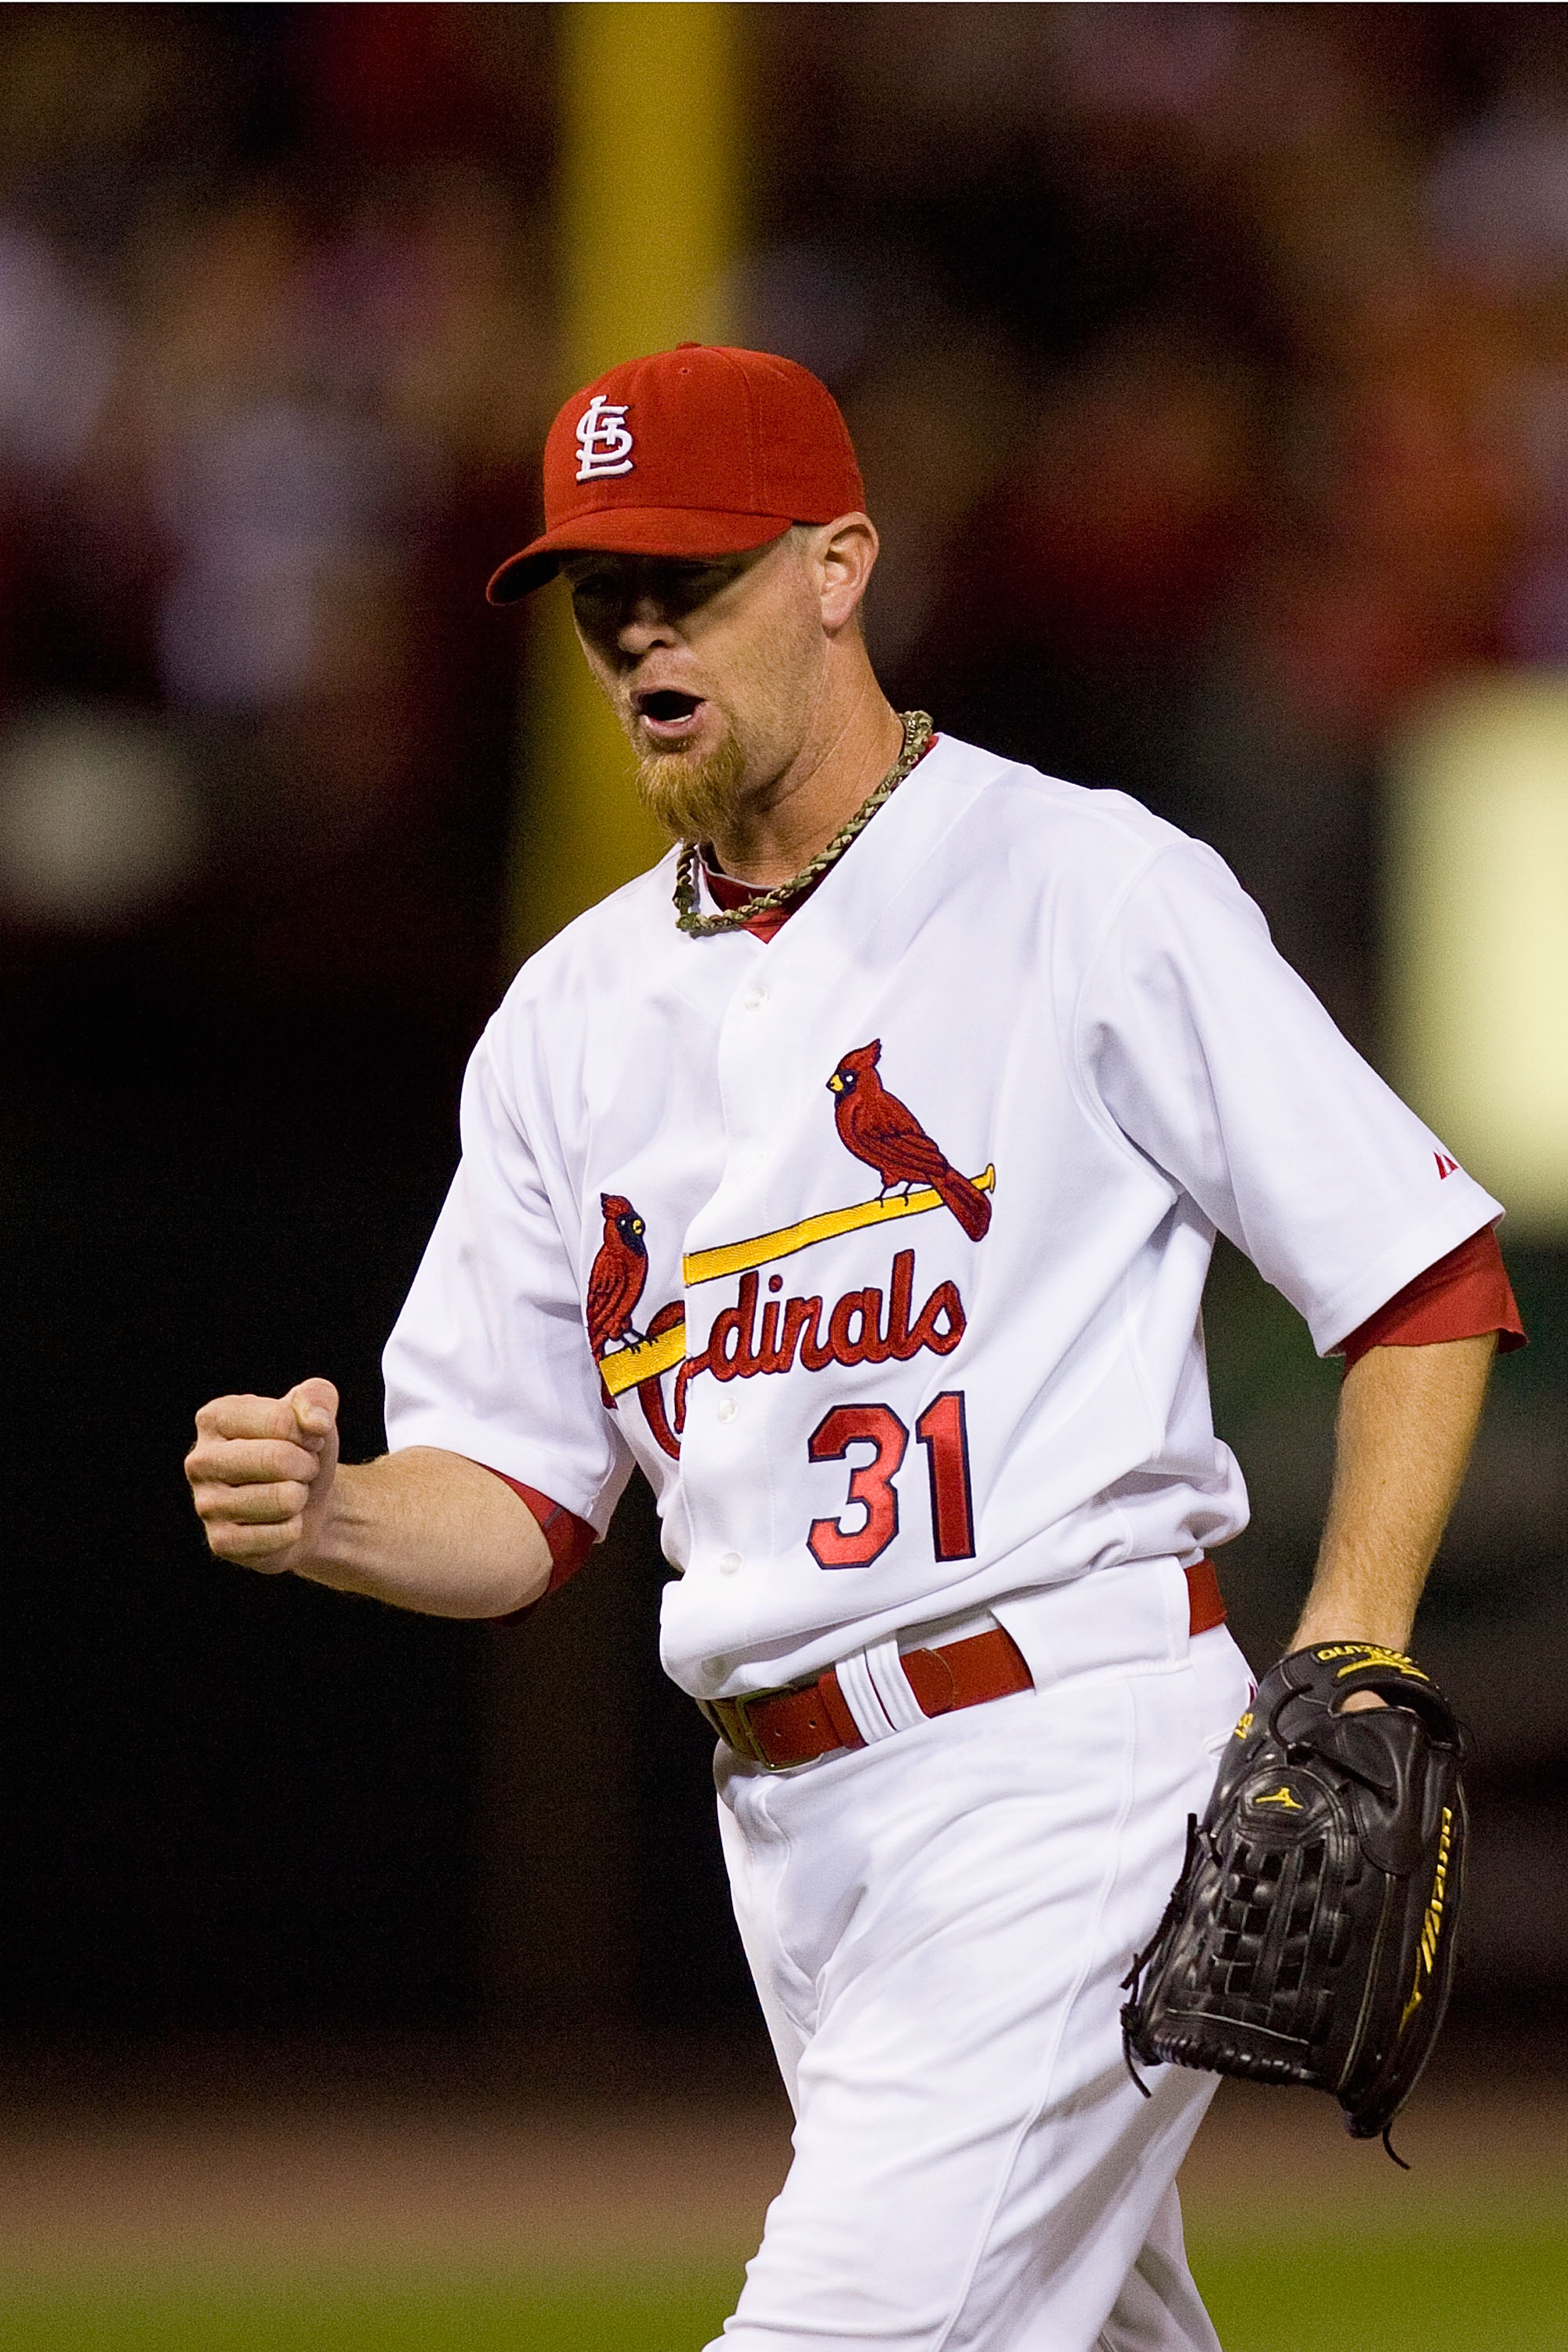 ST. LOUIS - SEPTEMBER 3: Reliever Ryan Franklin #31 of the St. Louis Cardinals celebrates beating the Cincinnati Reds at Busch Stadium on September 3, 2010 in St. Louis, Missouri.  The Cardinals beat the Reds 3-2.  (Photo by Dilip Vishwanat/Getty Images)